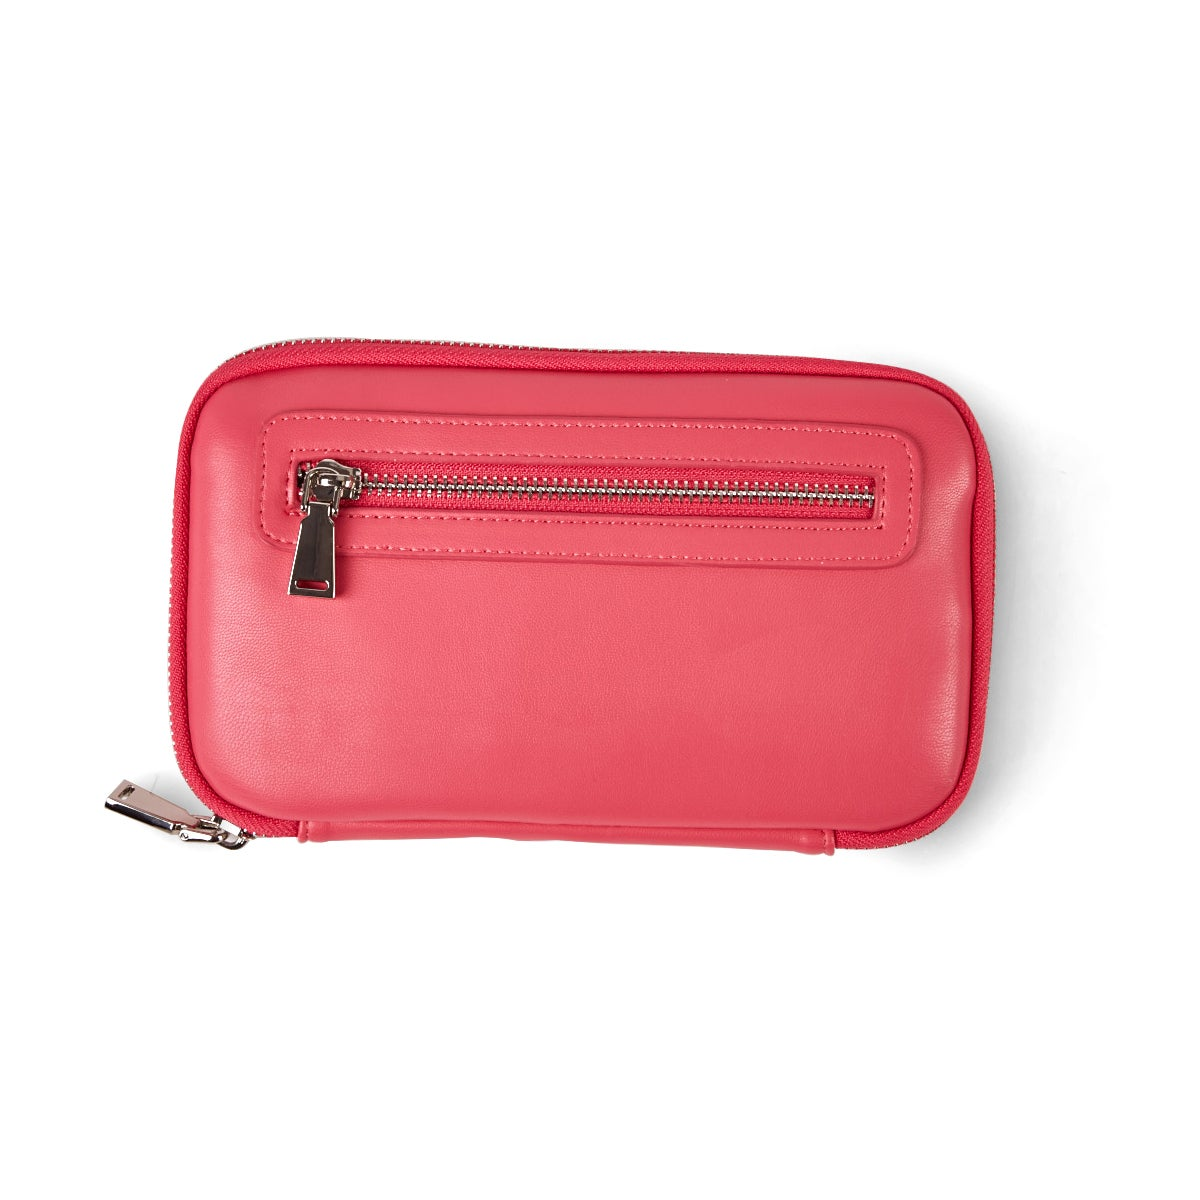 Lds Harlow World hot pink wallet